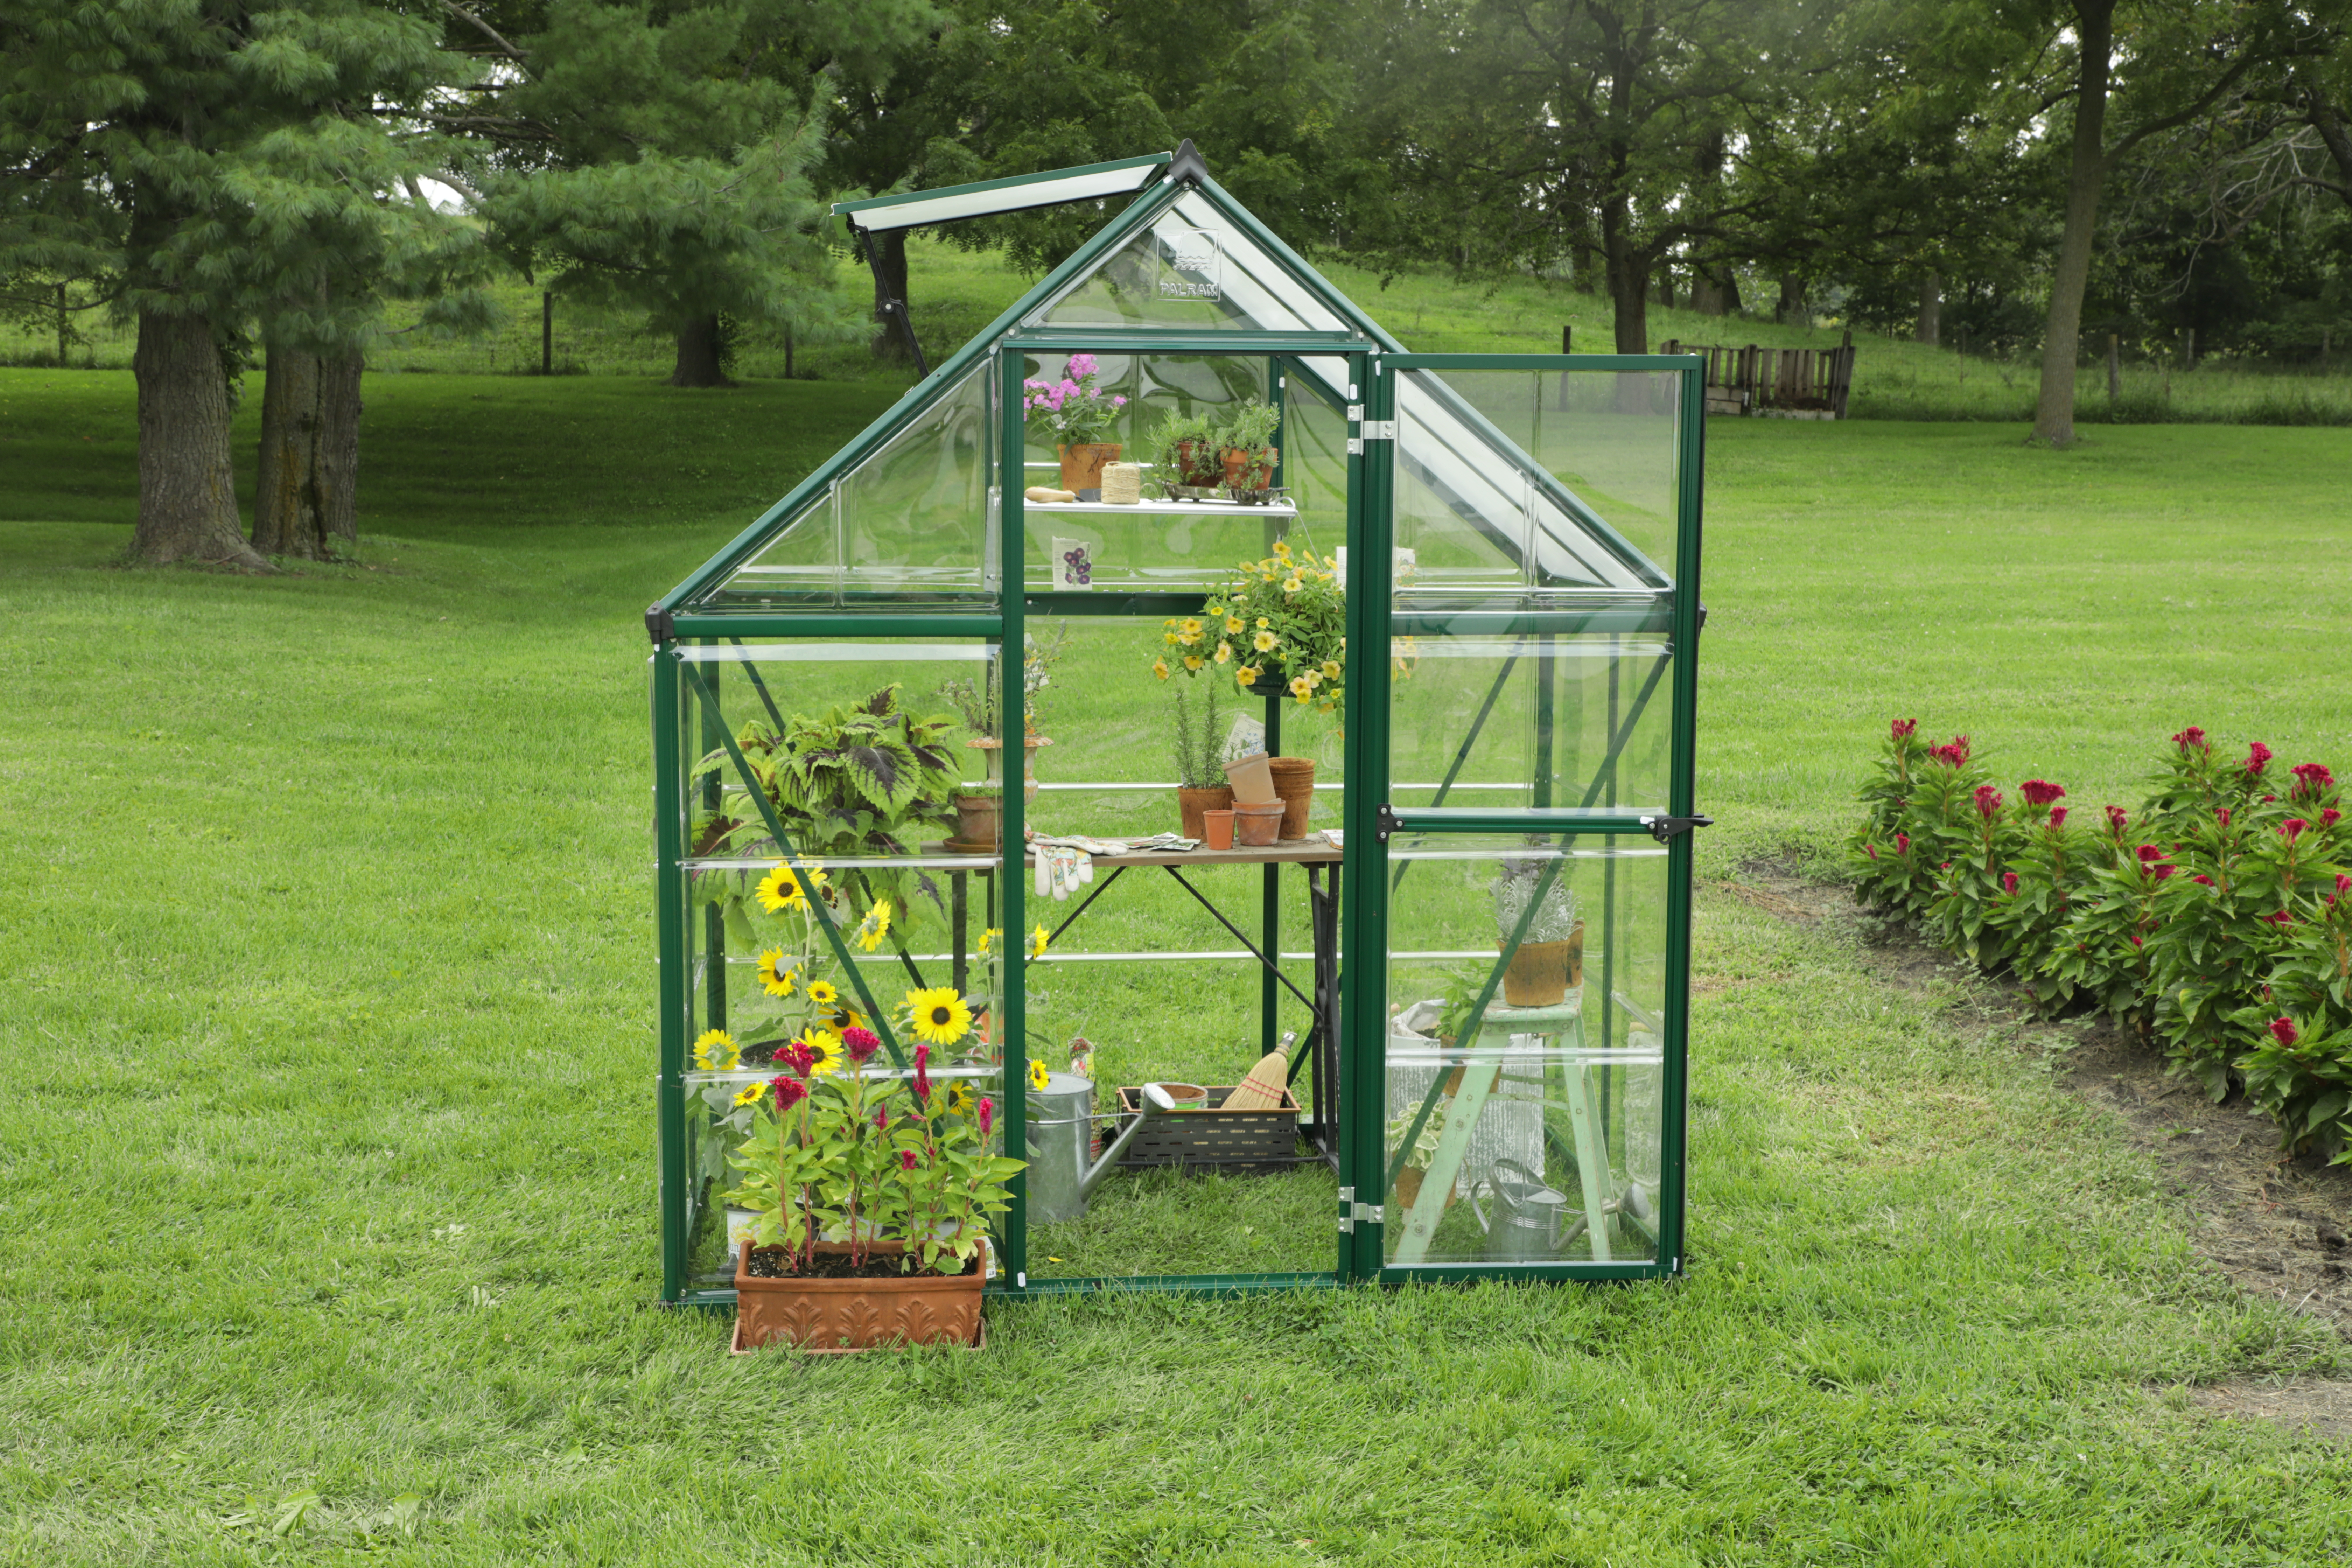 How to Build a Greenhouse Kit